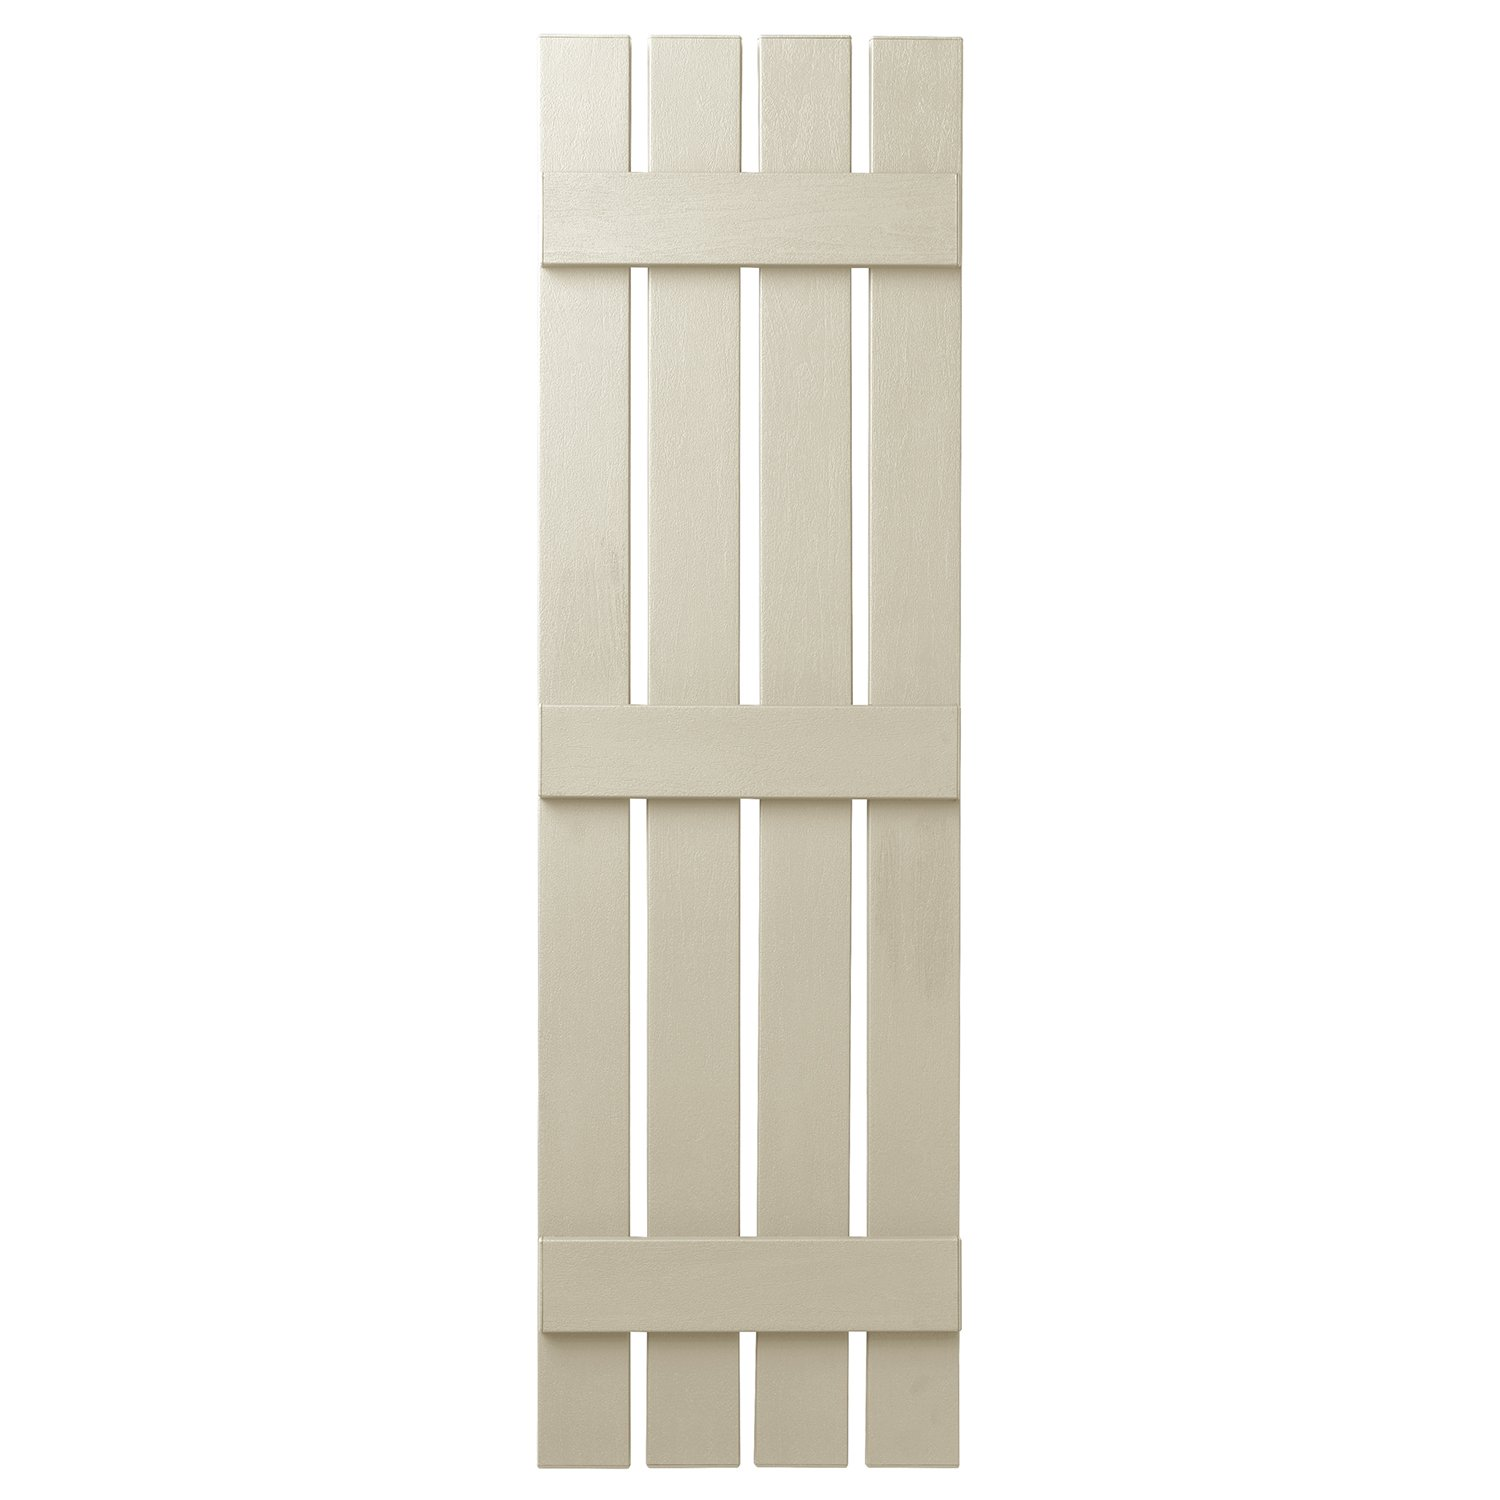 Ply Gem Shutters and Accents VIN401659 CRM 4 Board